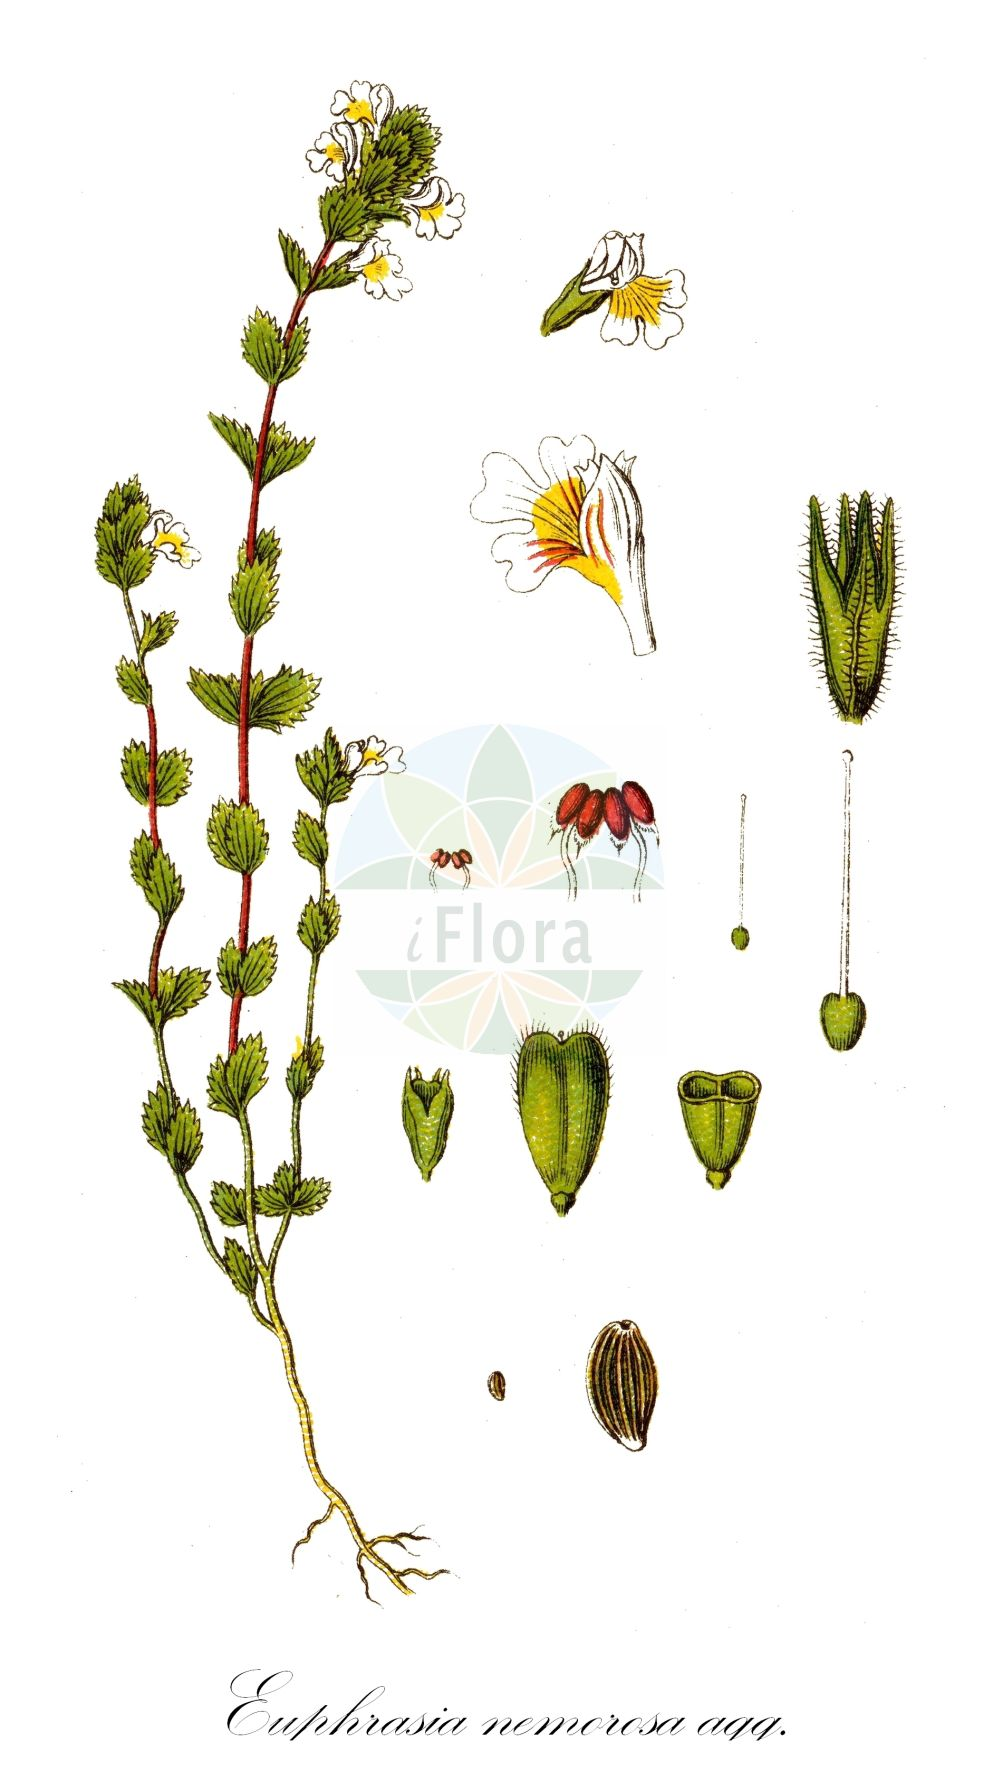 Historische Abbildung von Euphrasia nemorosa agg. (Hain-Augentrost - Wind Eyebright). Das Bild zeigt Blatt, Bluete, Frucht und Same. ---- Historical Drawing of Euphrasia nemorosa agg. (Hain-Augentrost - Wind Eyebright).The image is showing leaf, flower, fruit and seed.(Euphrasia nemorosa agg.,Hain-Augentrost,Wind Eyebright,Gewoehnlicher ,Euphrasia,Augentrost,Eyebright,Orobanchaceae,Sommerwurzgewaechse,Broomrape family,Blatt,Bluete,Frucht,Same,leaf,flower,fruit,seed,Sturm (1796f))